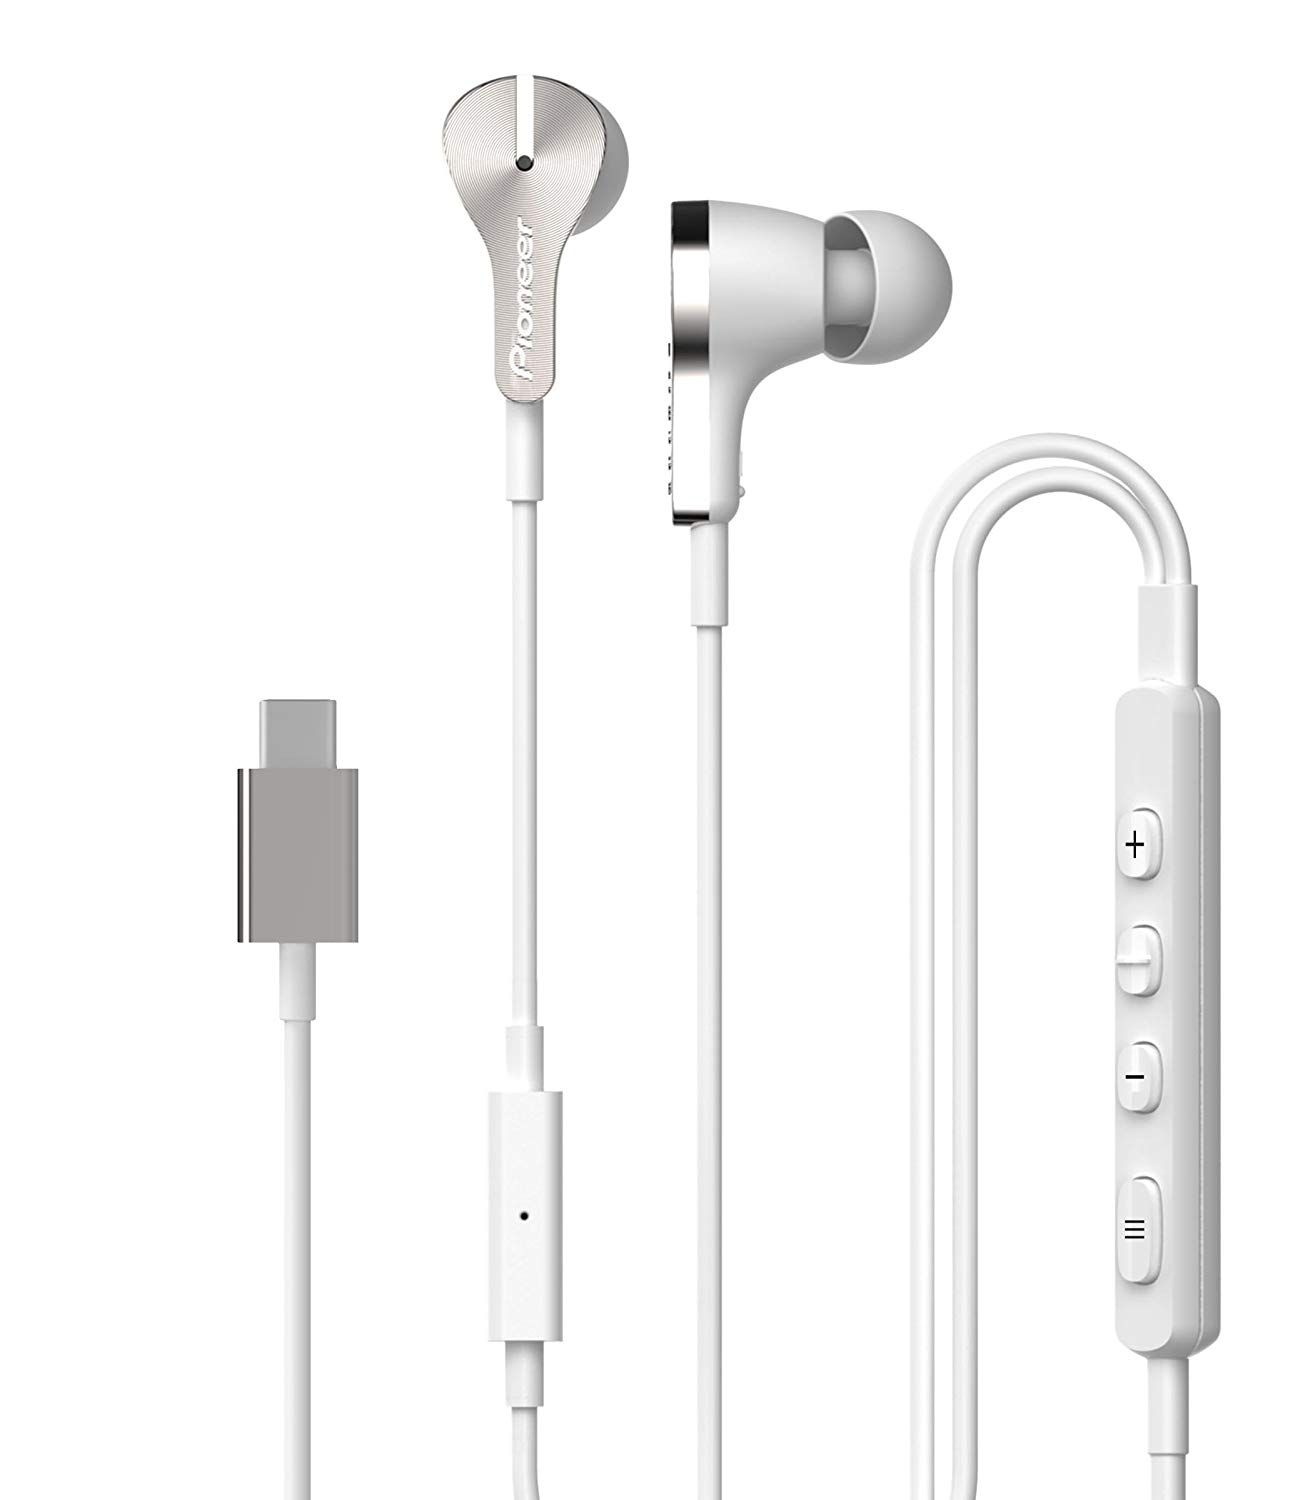 Amazon Com Pioneer Rayz Pro Smart Noise Cancellation Headphones In Ear Earbuds Iphone And Macbook Compat Earbuds Noise Cancelling Earbuds Earbuds Microphone